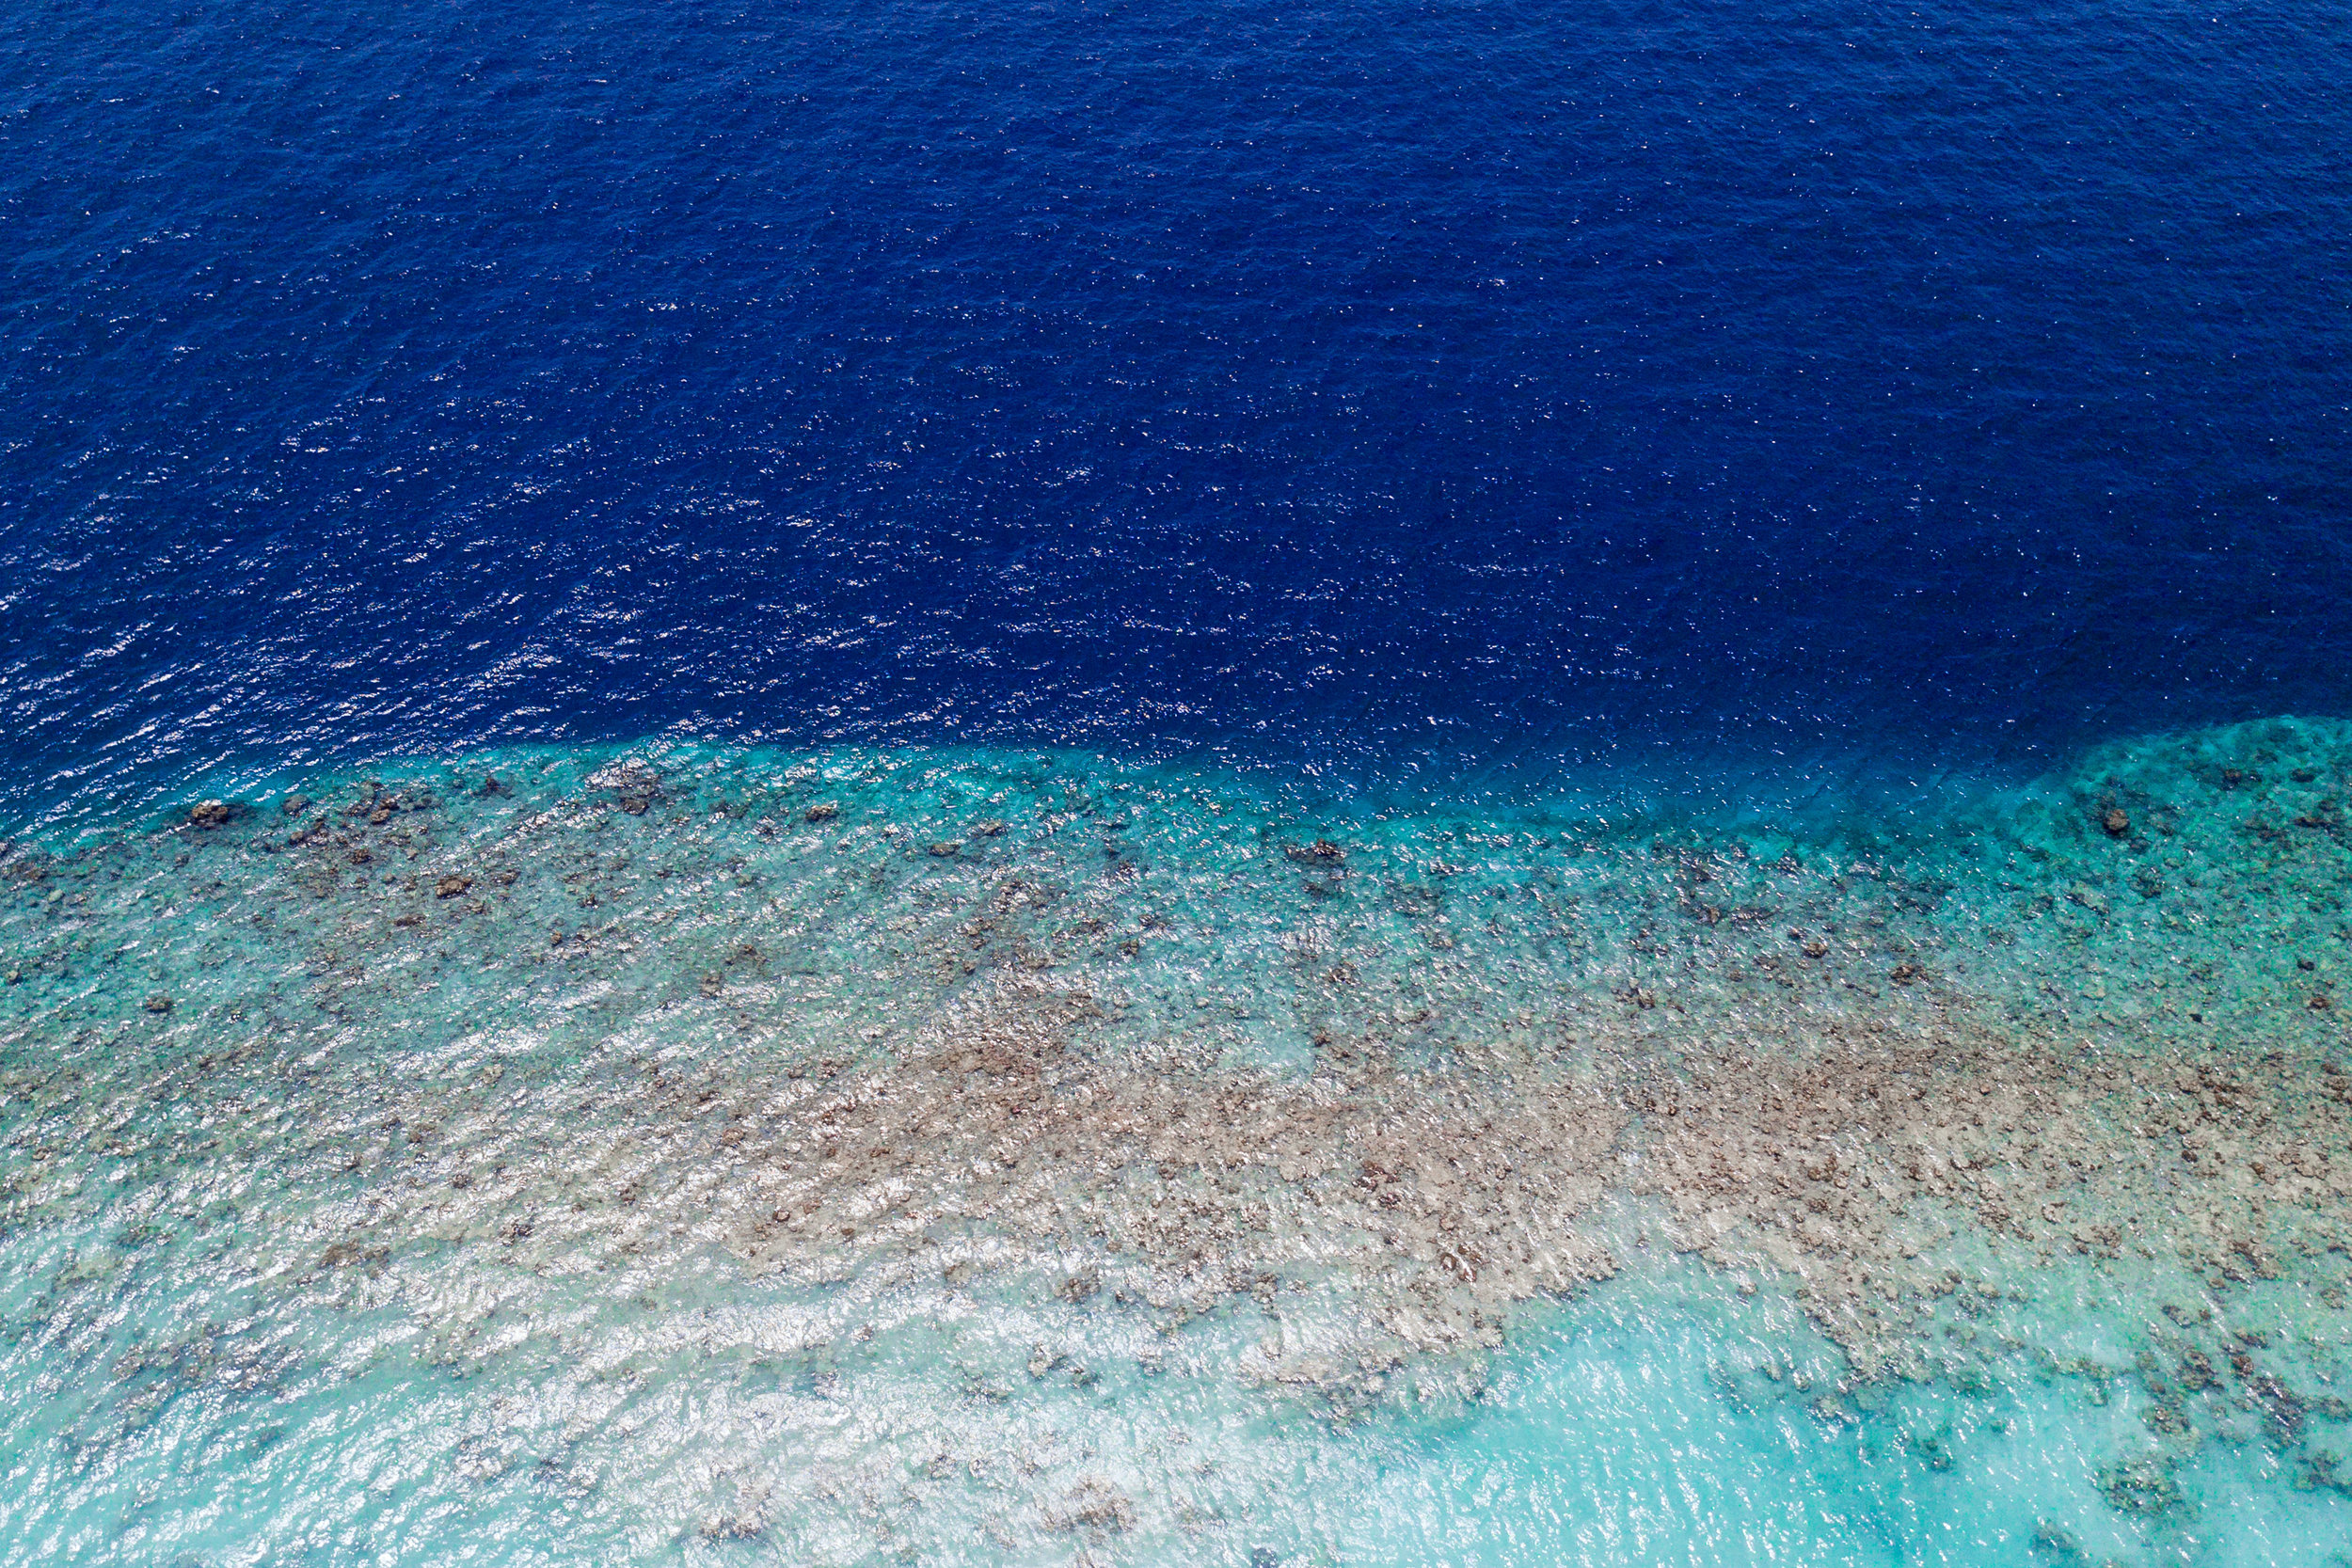 Maldives Blue Water for slideshow carousel.jpg